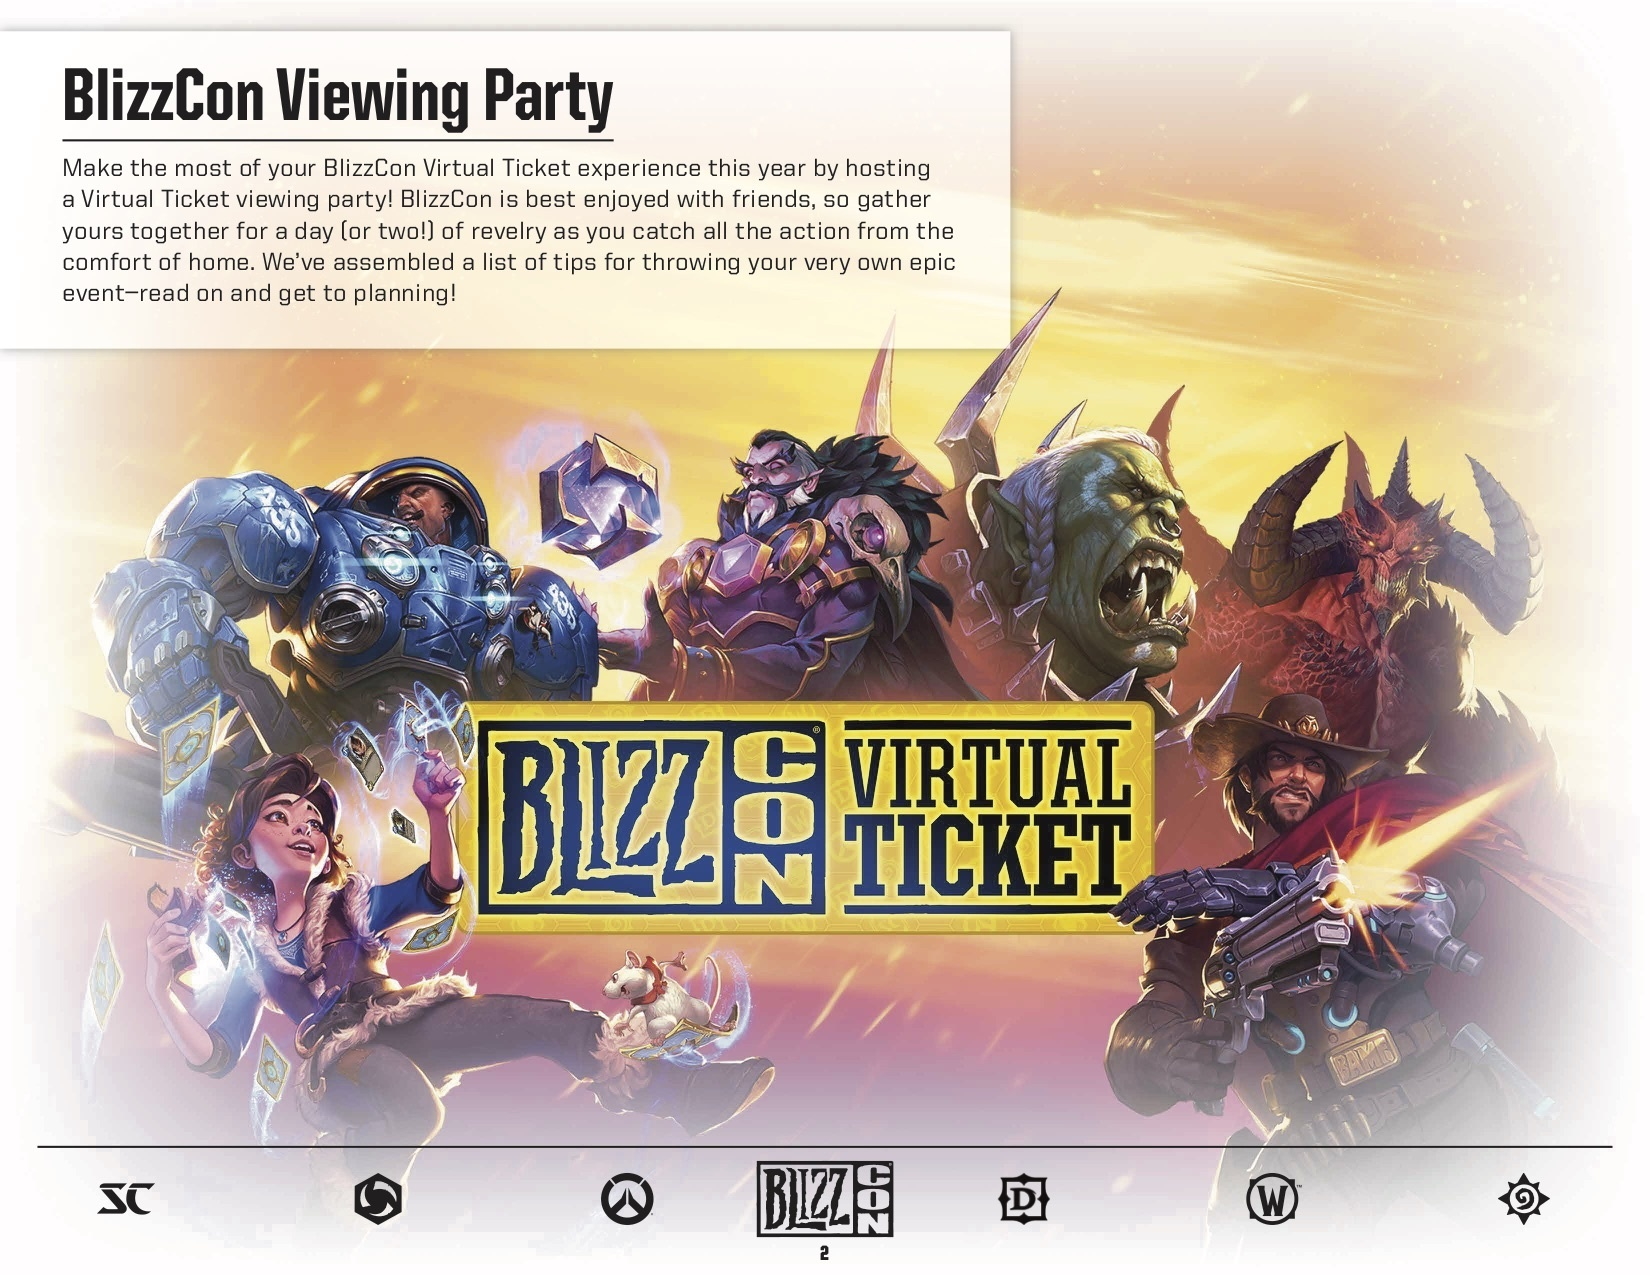 blizzcon viewing party booklet